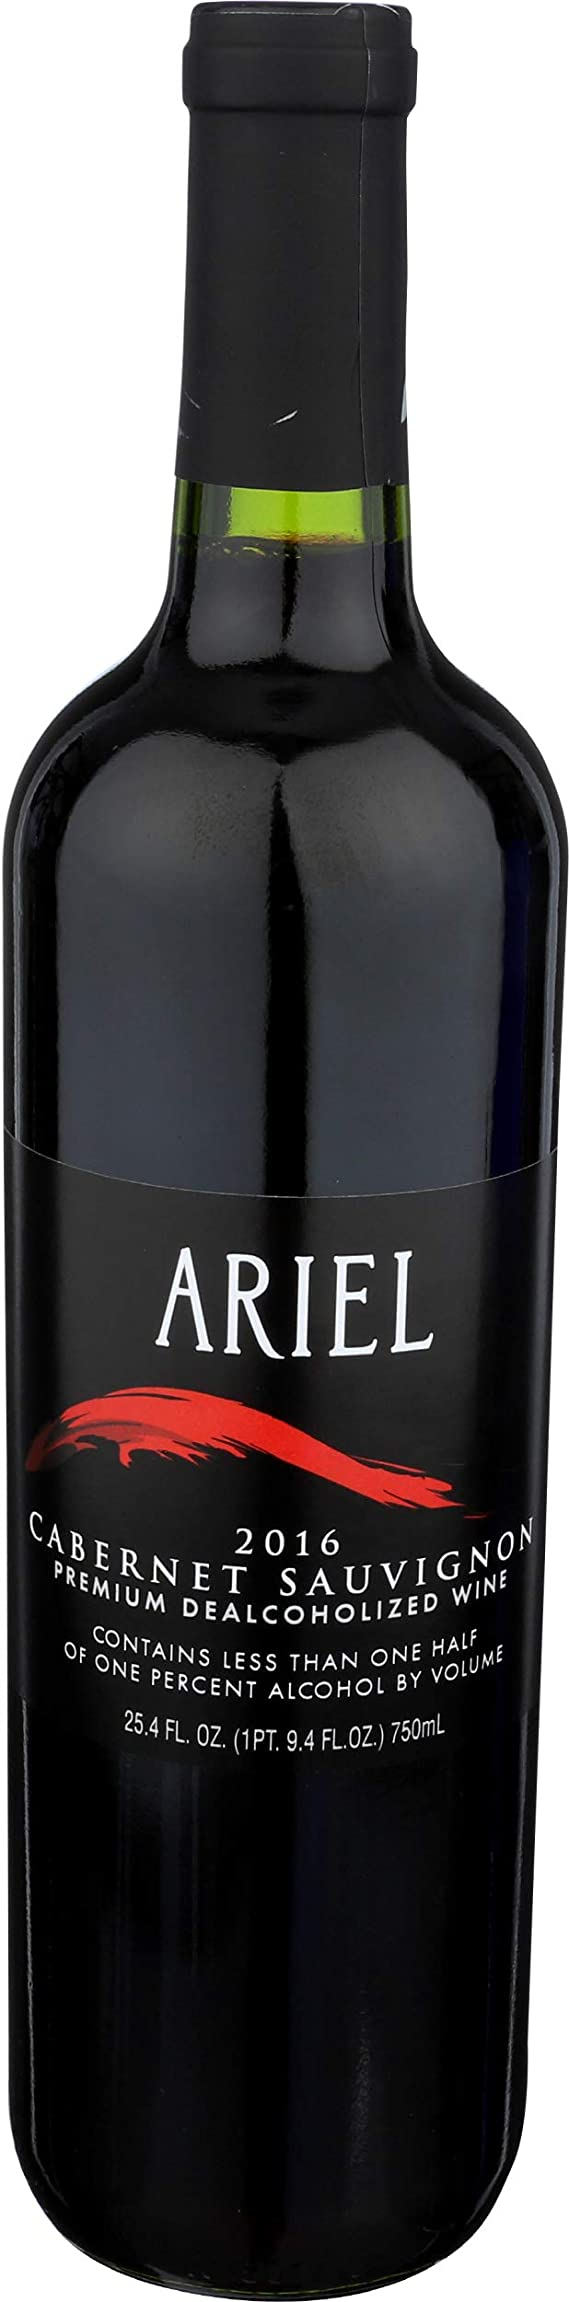 ARIEL Dealcoholized Cabernet Sauvignon